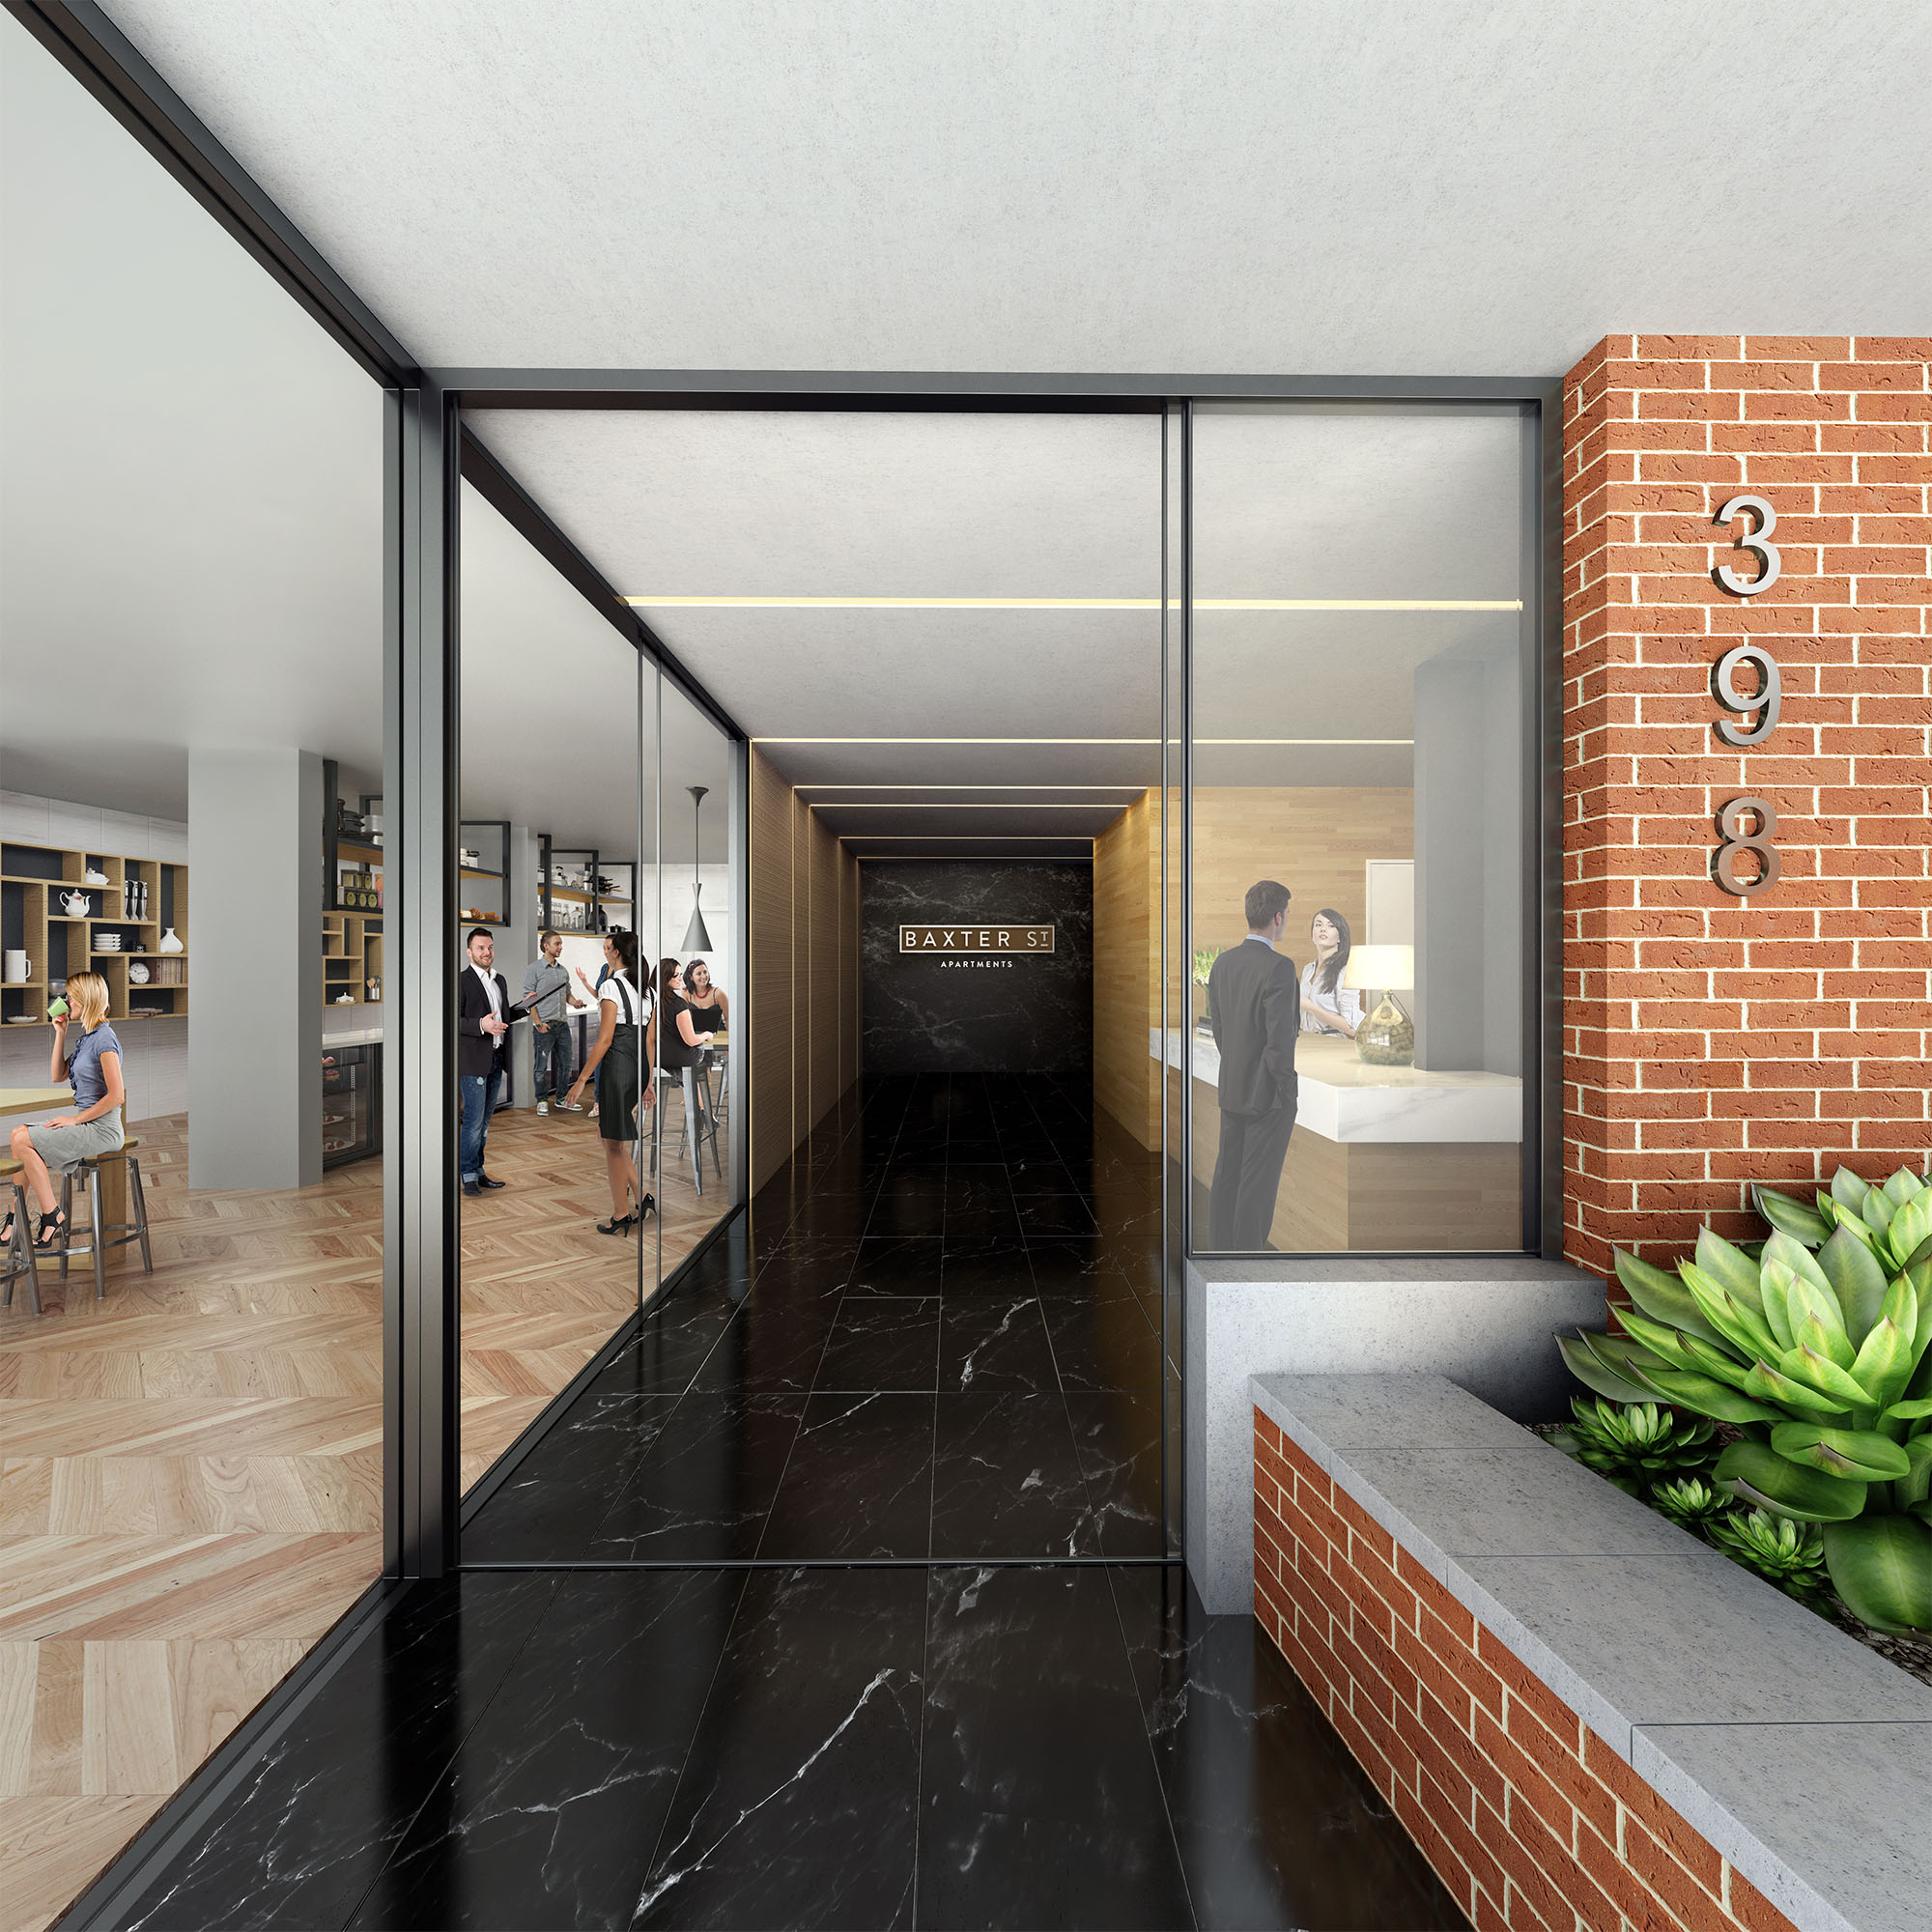 Fortitude Valley - Baxter foyer